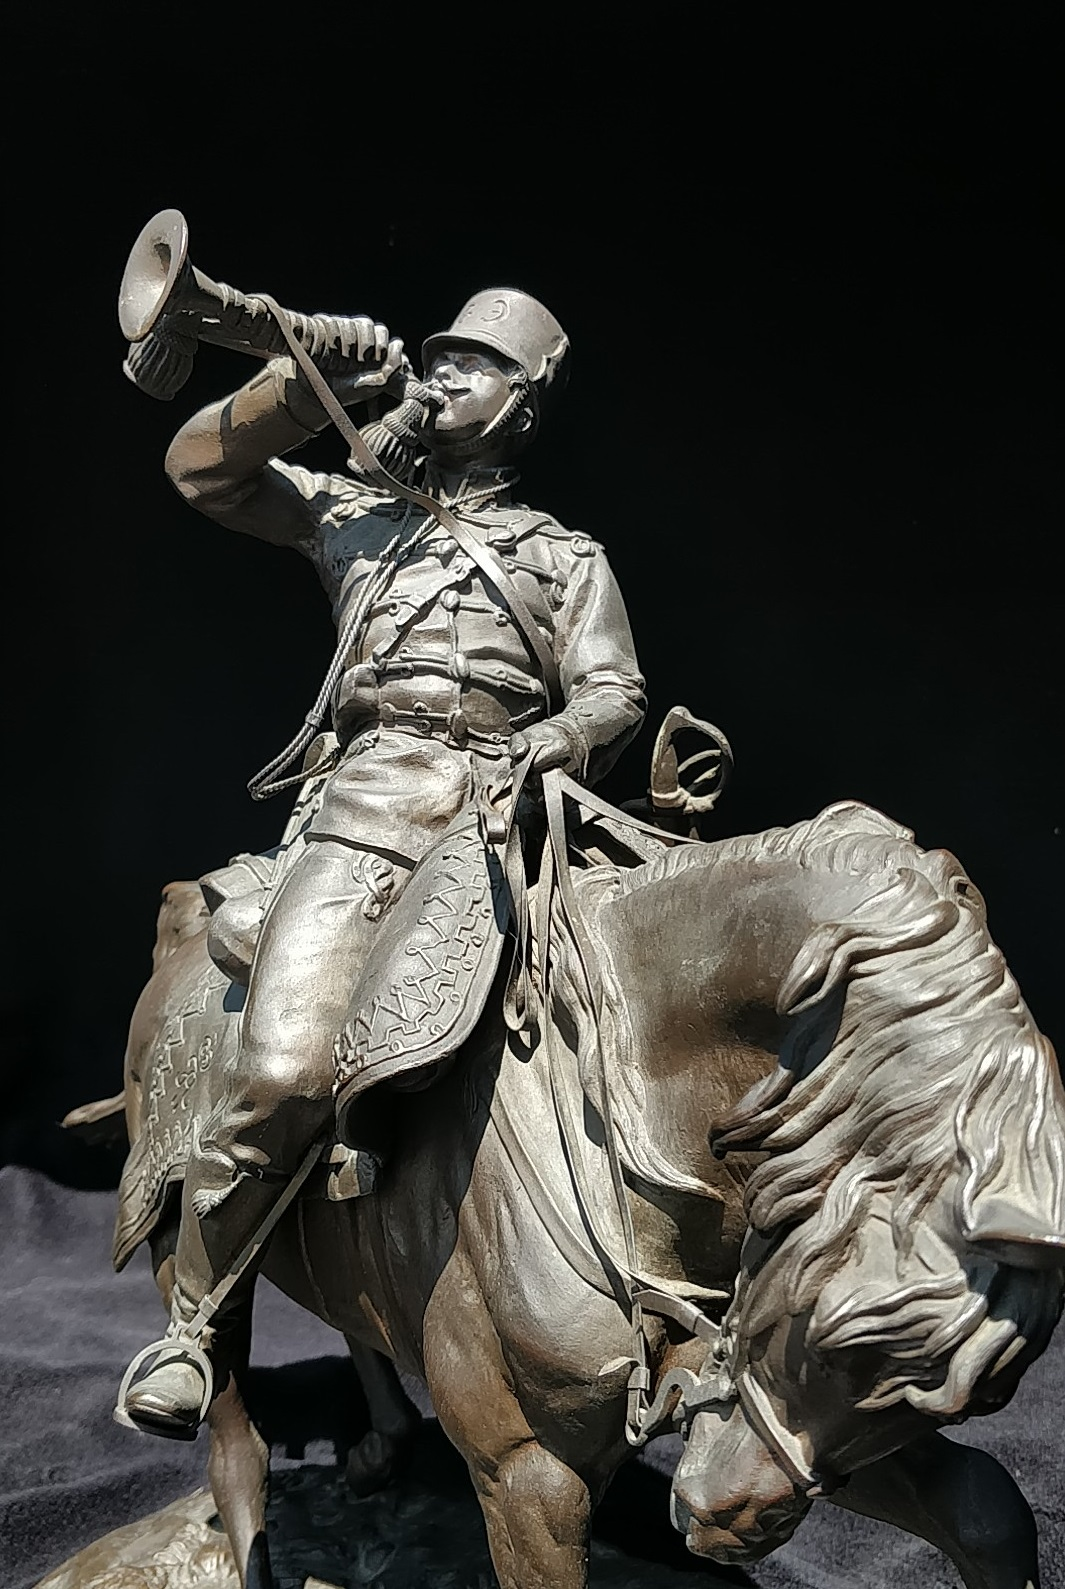 cossack - russian_bronze-sculpture-gussard_bugler